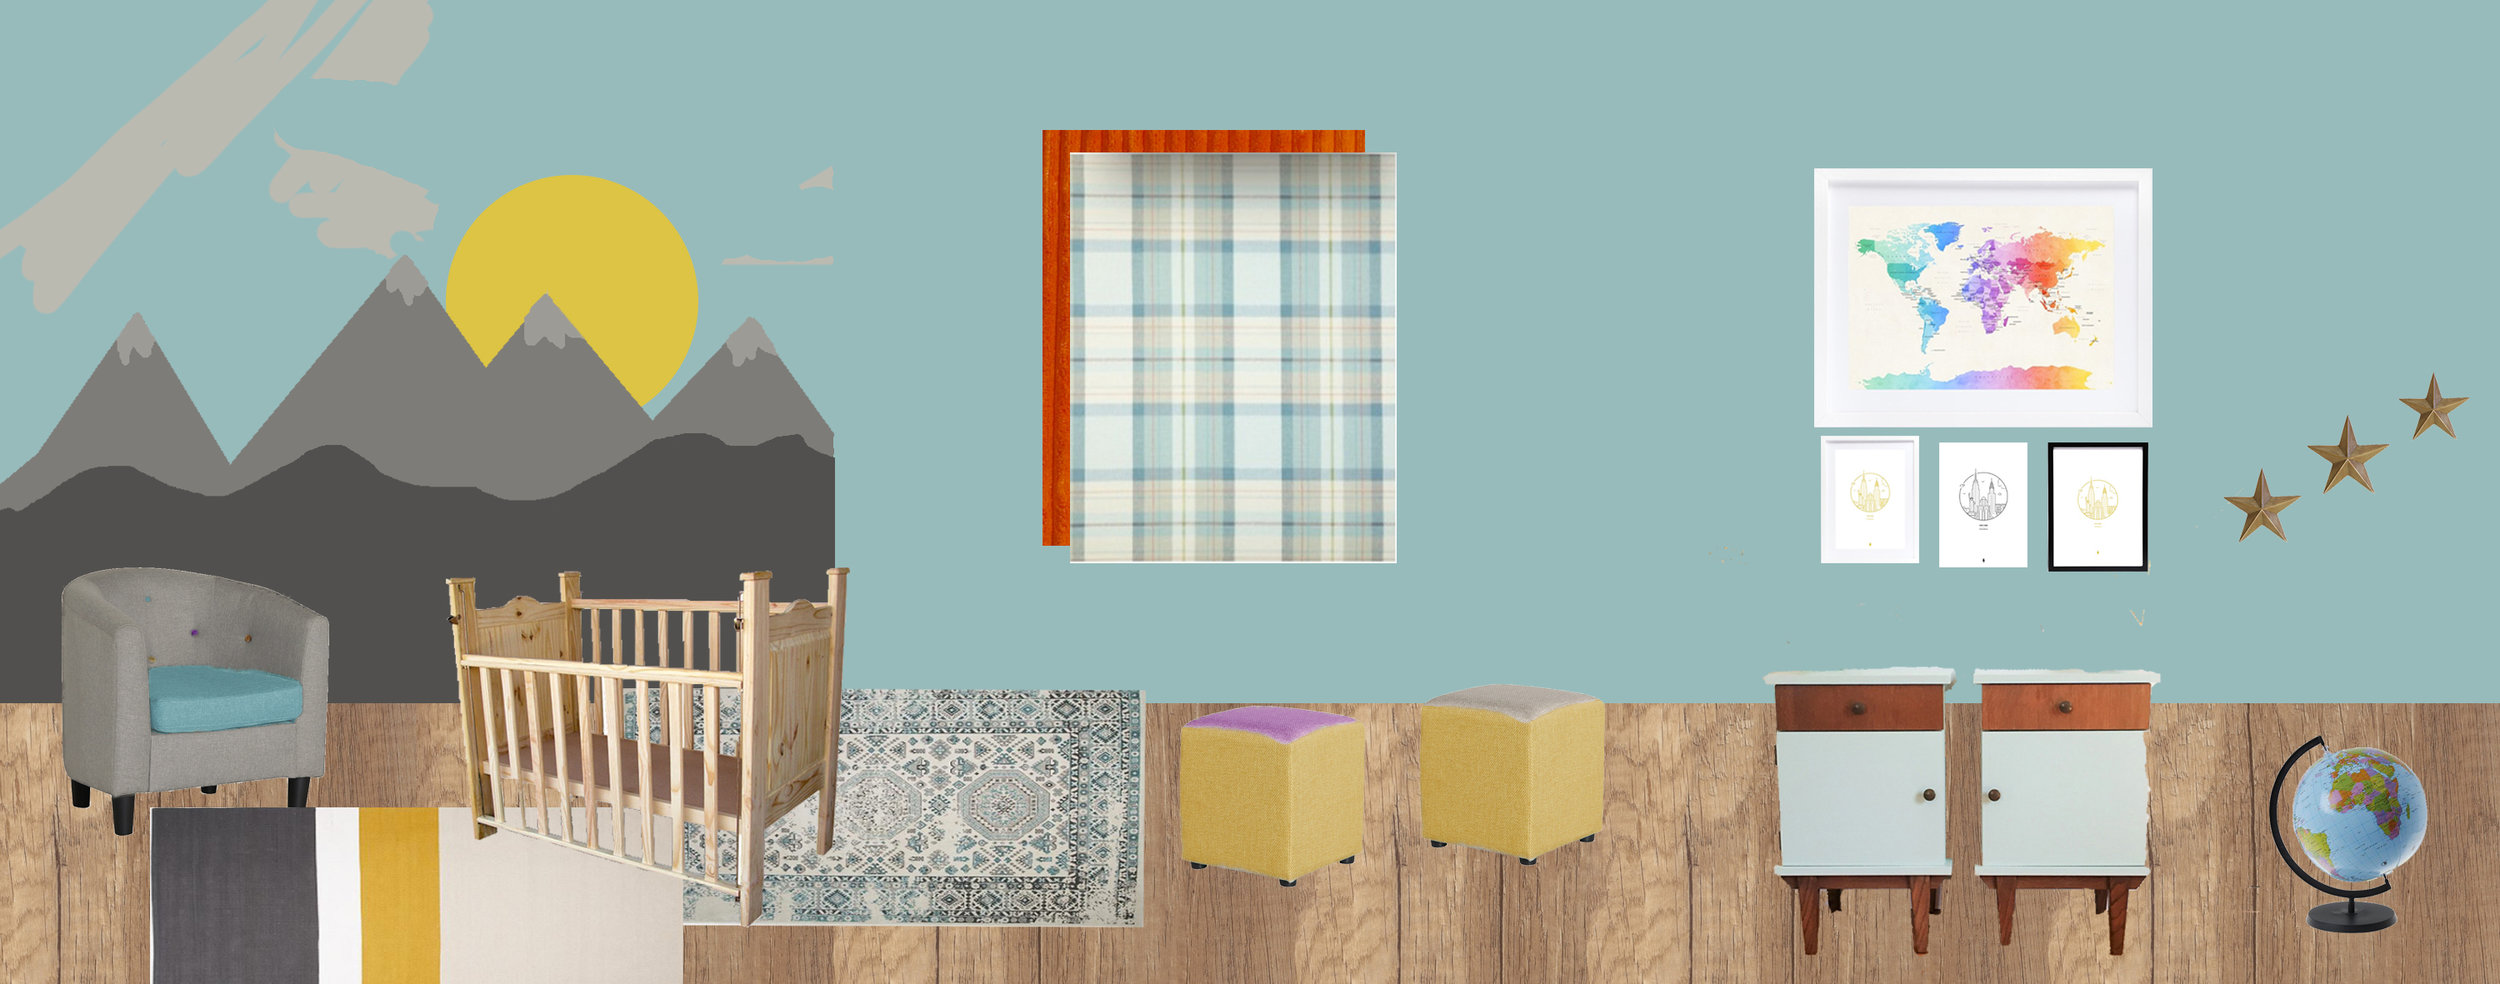 Draft themed baby room nursery design by Tassels & Tigers Themed Interior Design & Decor in Johannesburg, South Africa